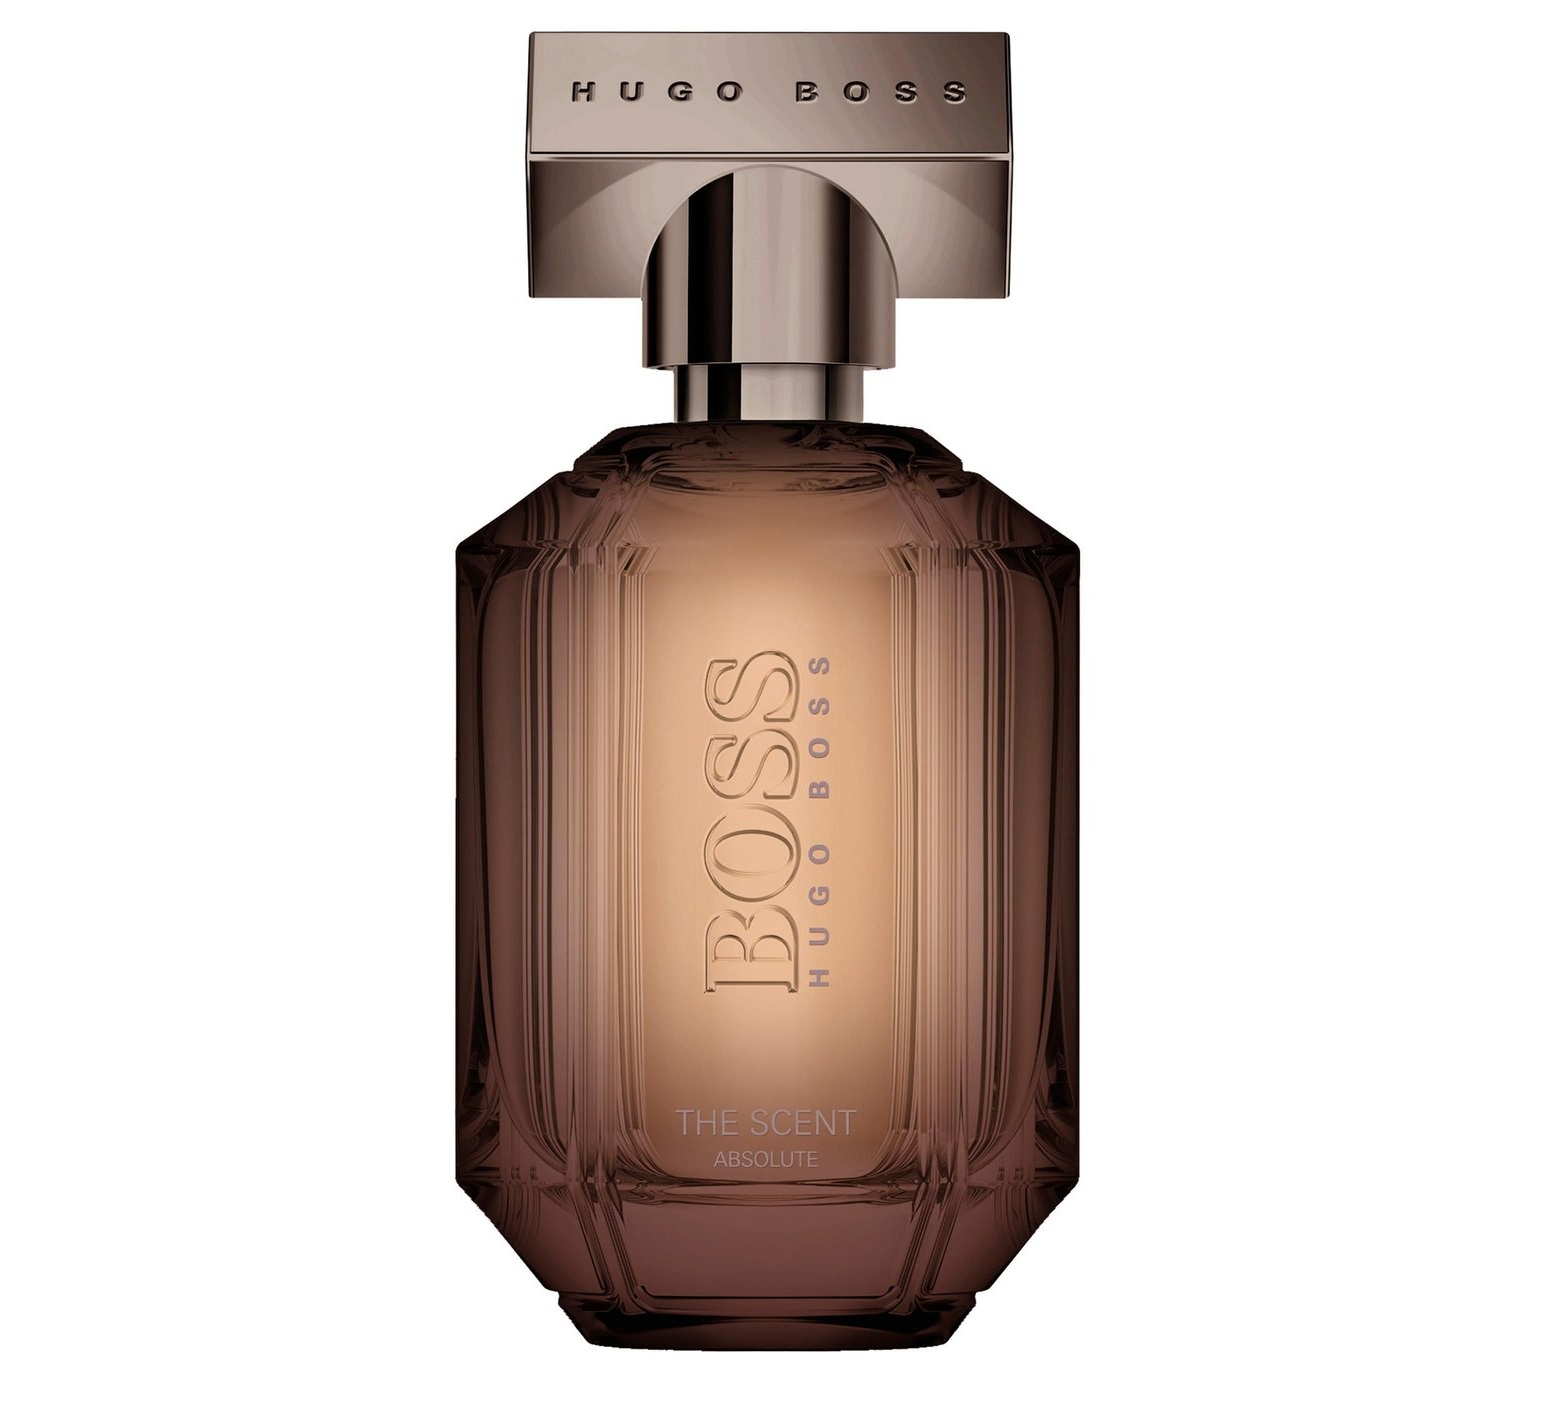 Hugo Boss The Scent for Her Absolute 50 mL